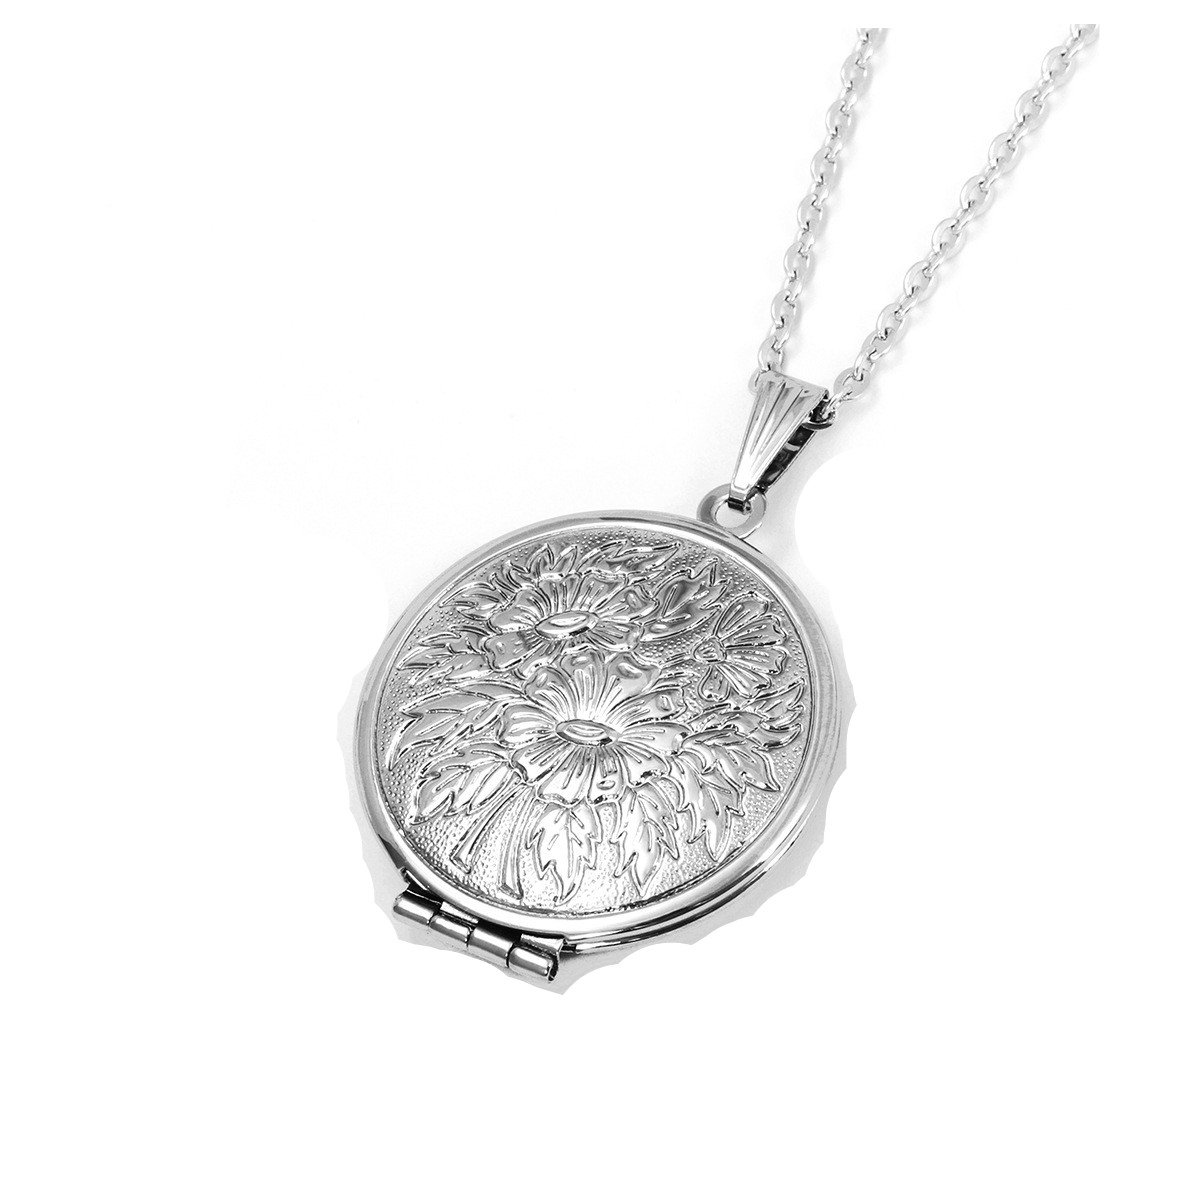 Dazzle flash Titanium Steel Heart Locket Necklace That Holds Pictures NGG245 (Flowers)